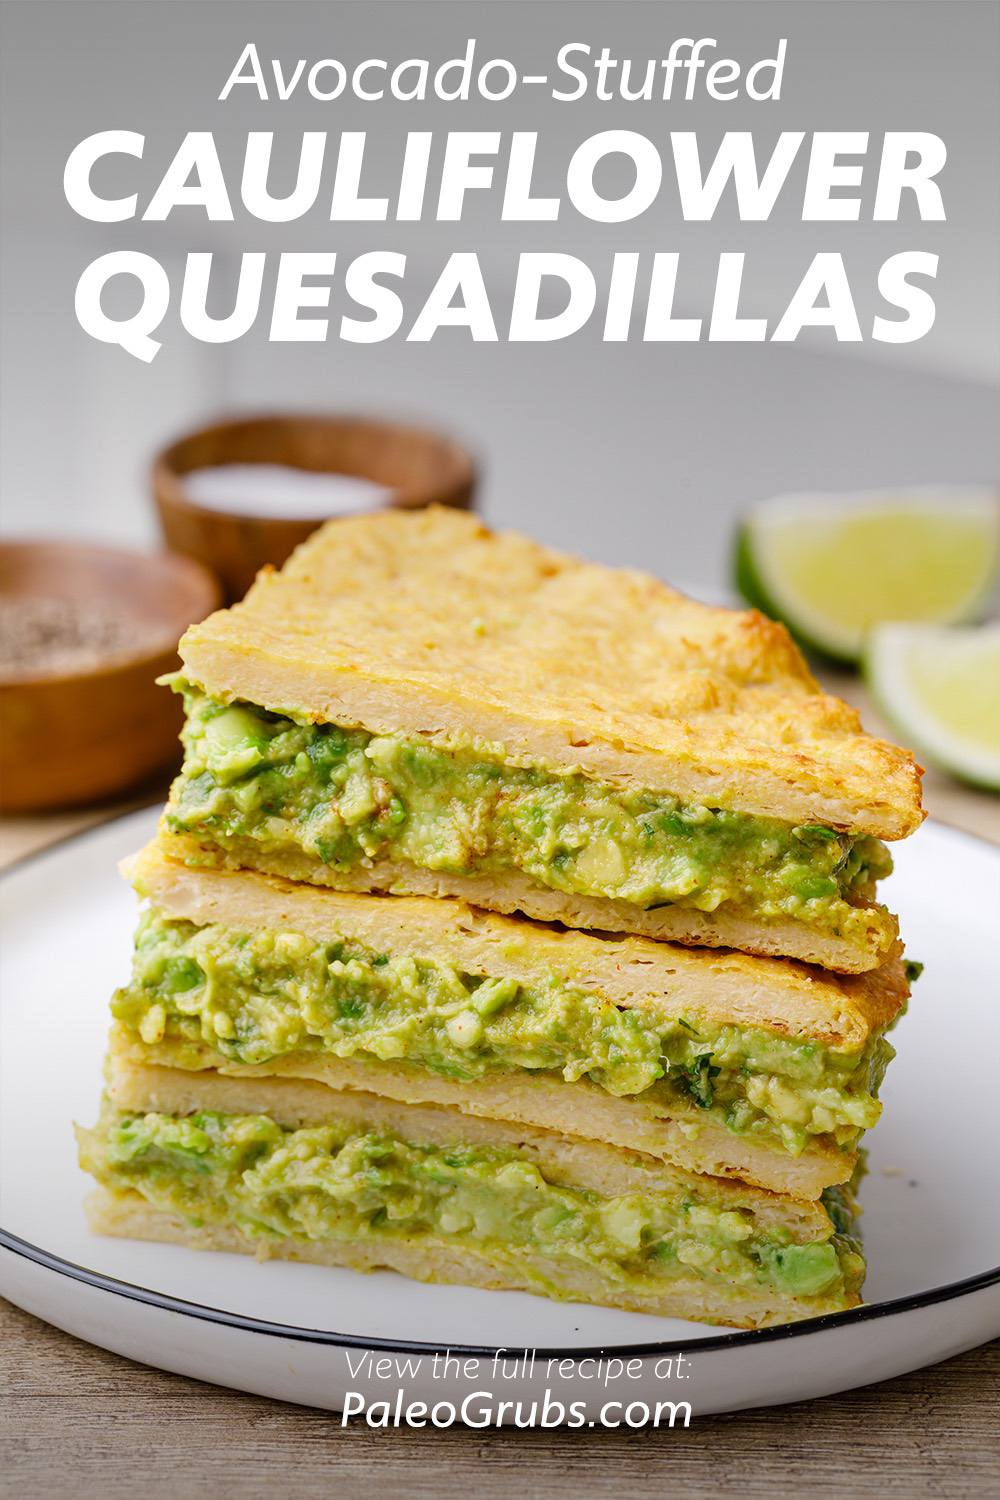 Avocado-Stuffed Cauliflower Quesadillas